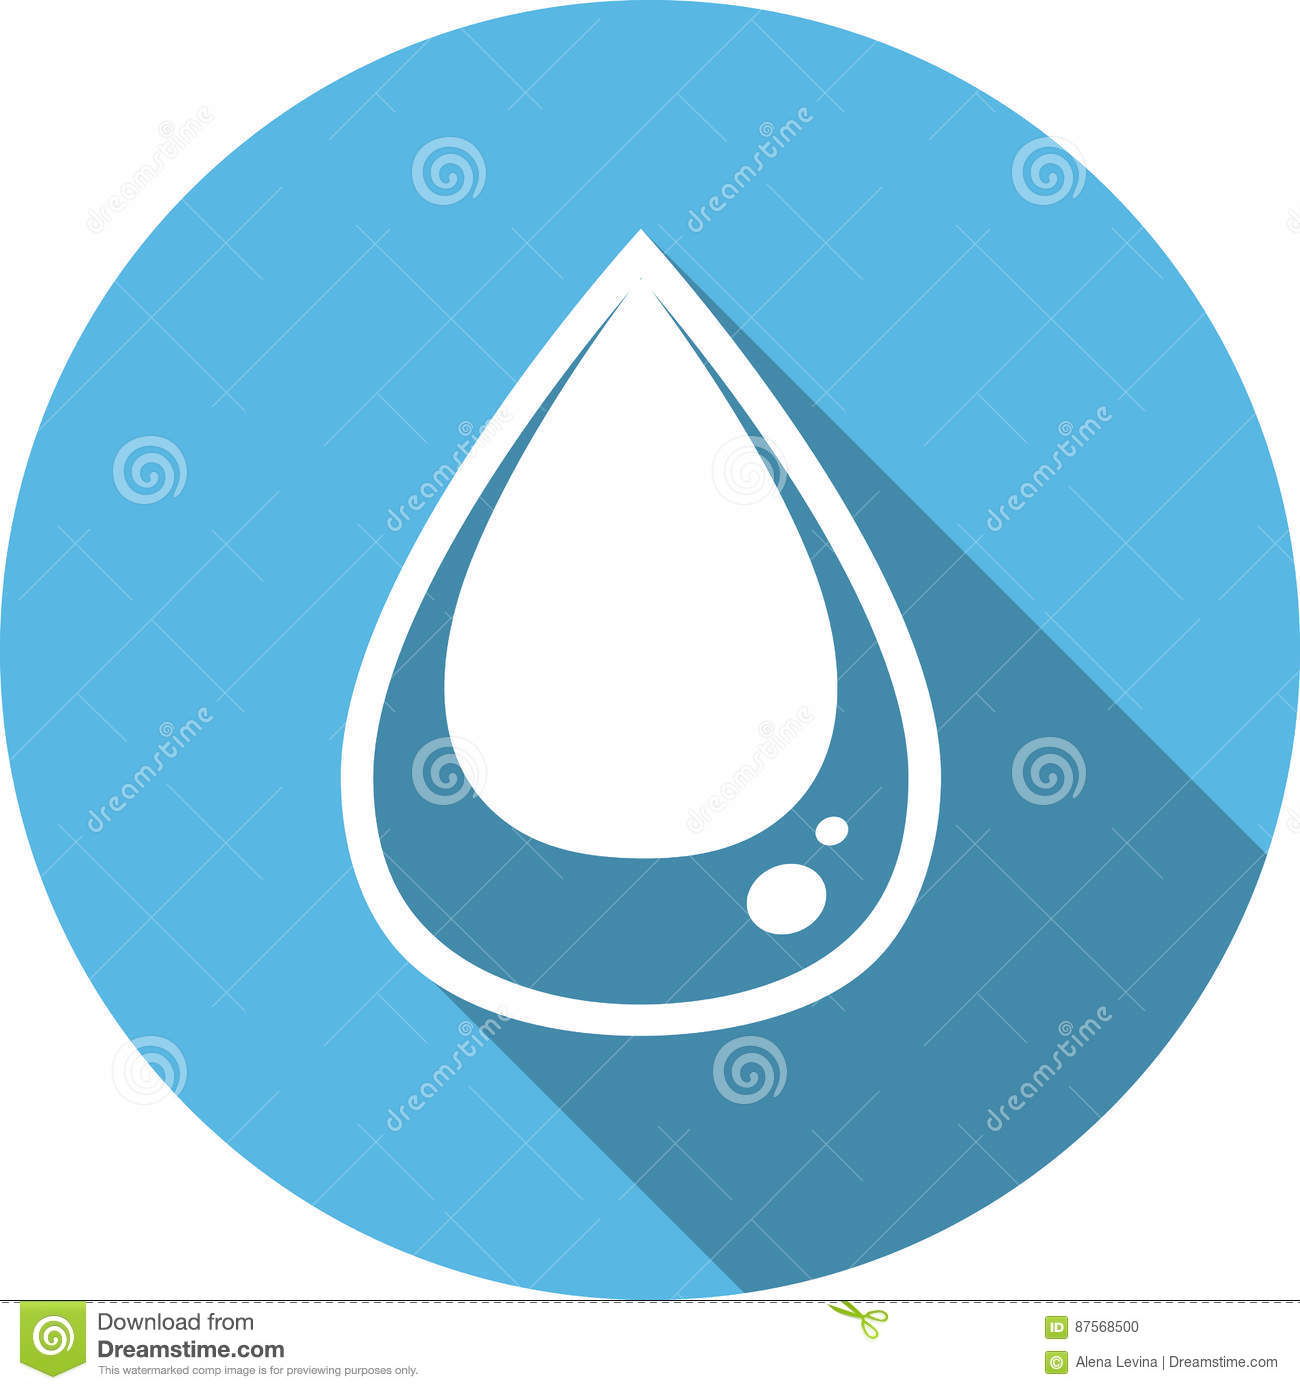 Water drop icon tear symbol stock illustration illustration of water drop icon tear symbol illustration aqua biocorpaavc Image collections